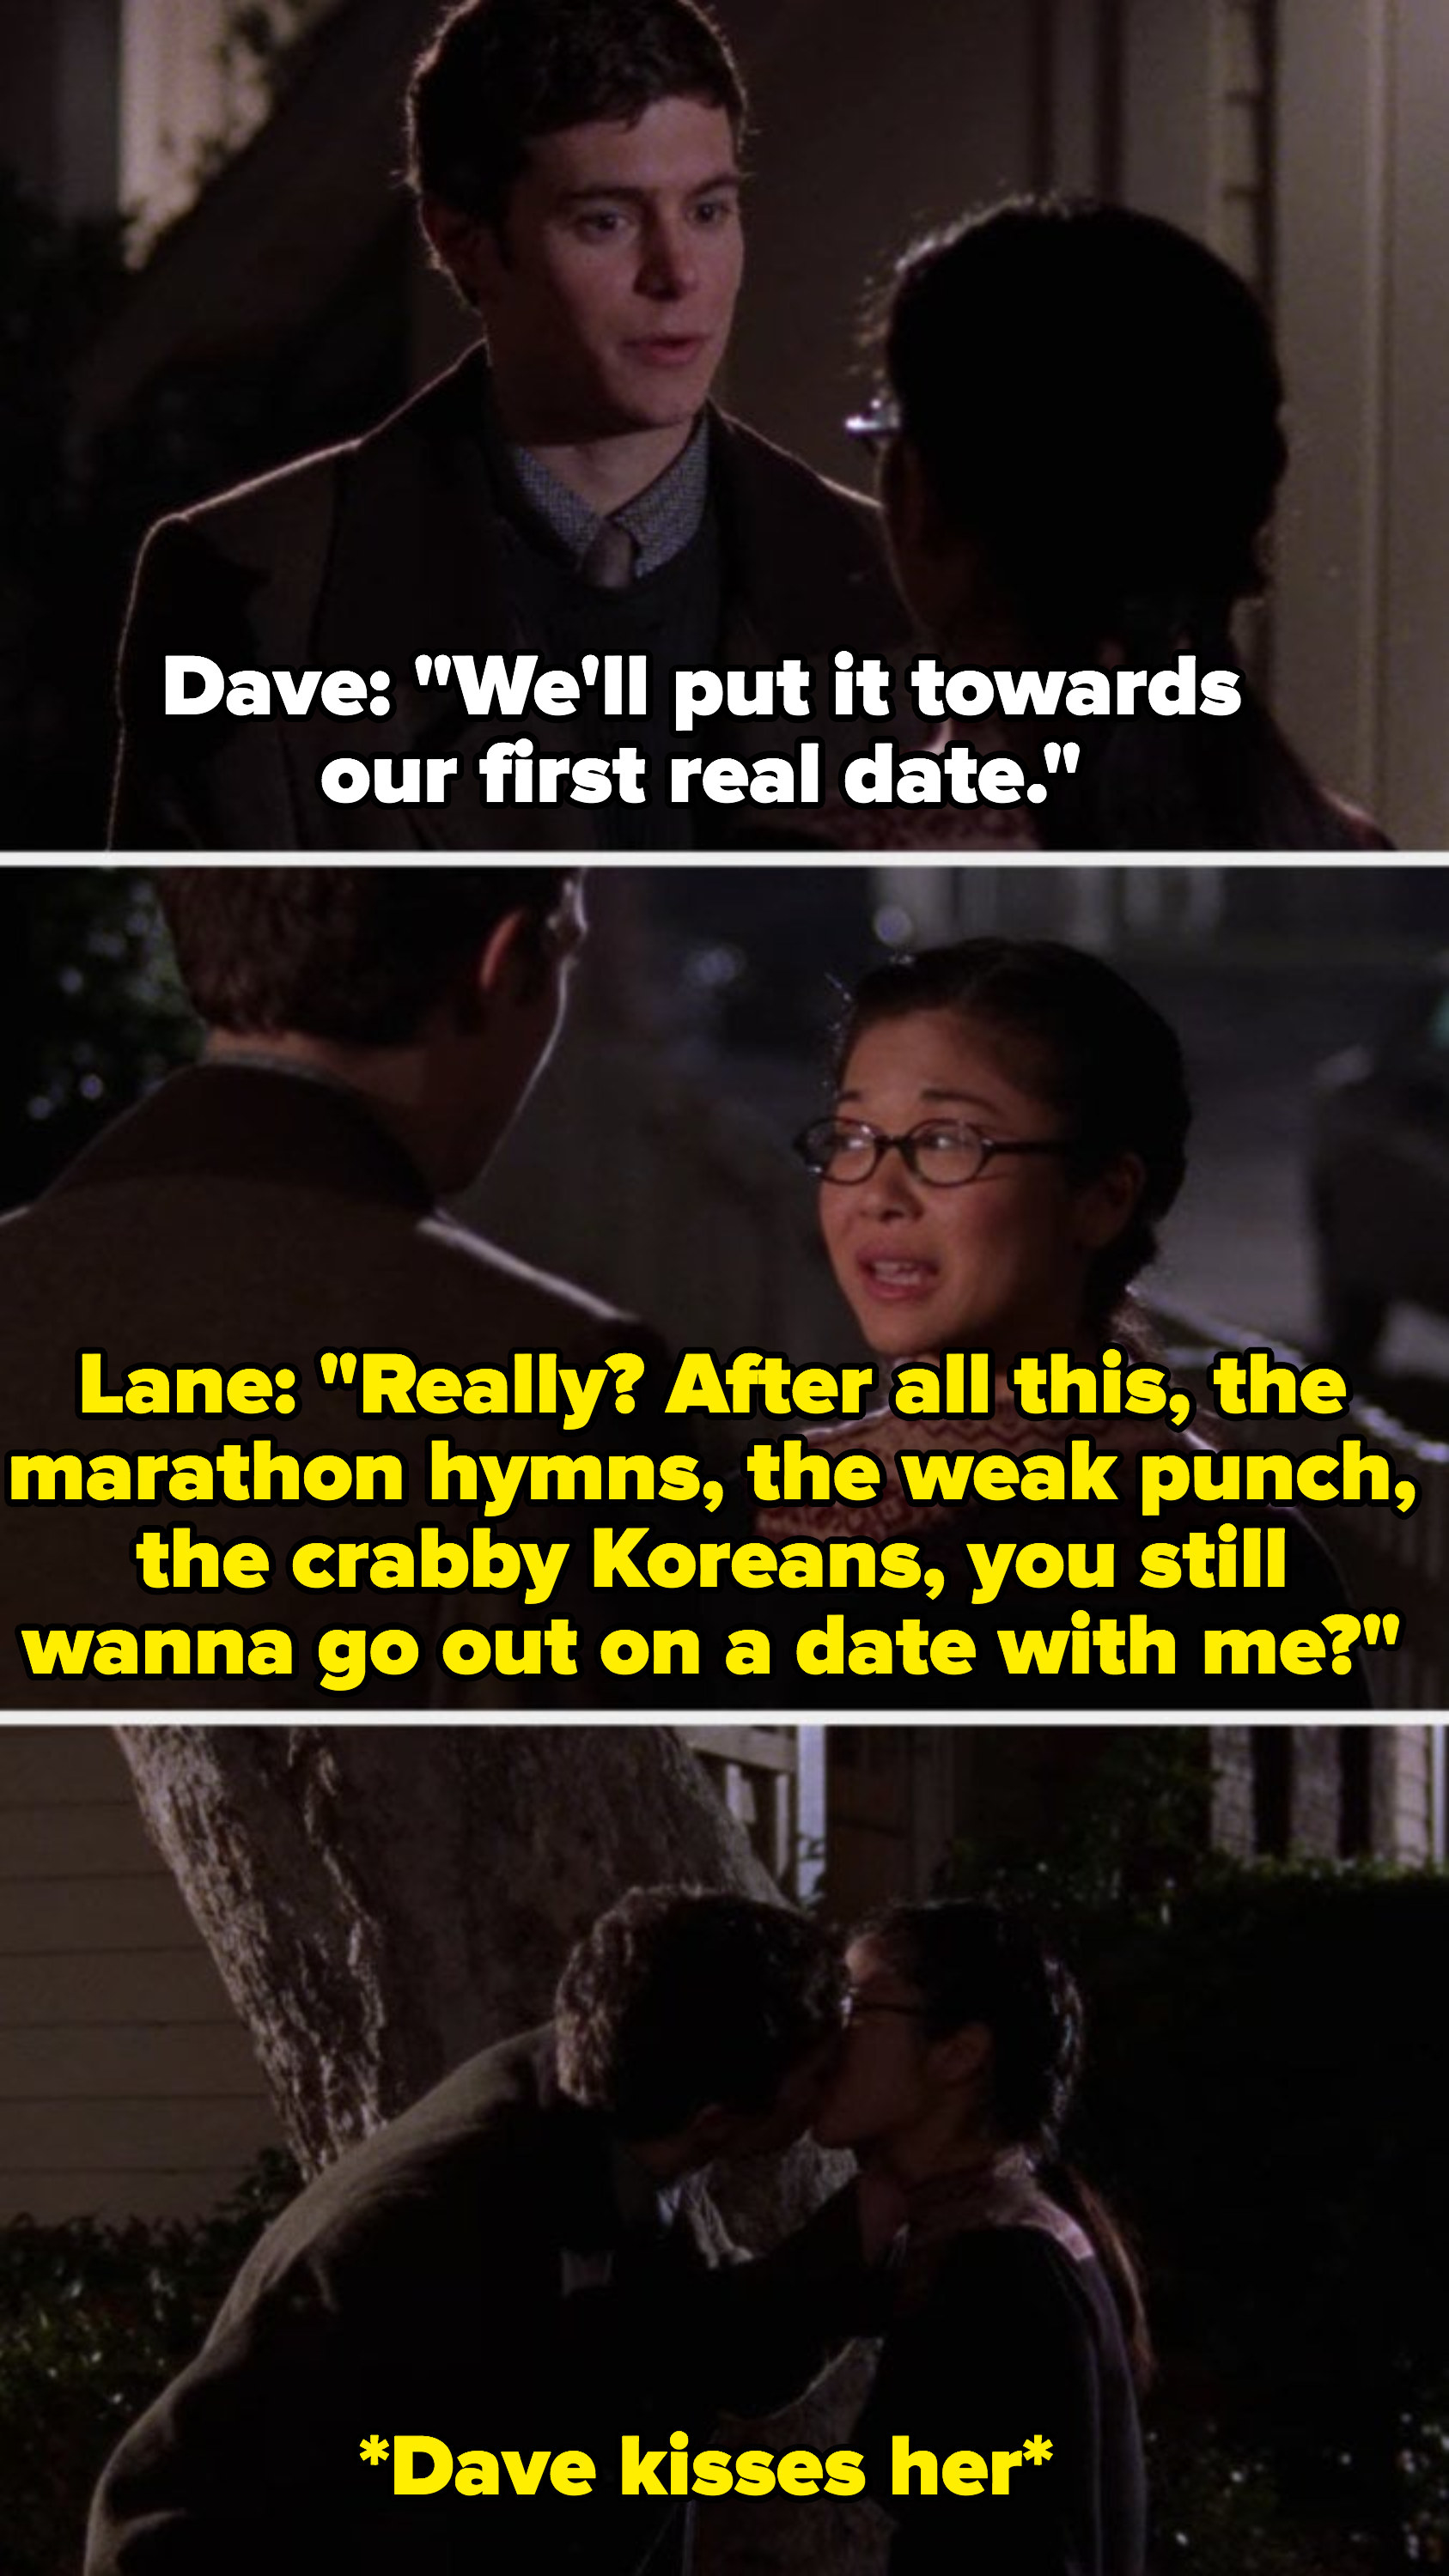 Dave and Lane kiss for the first time